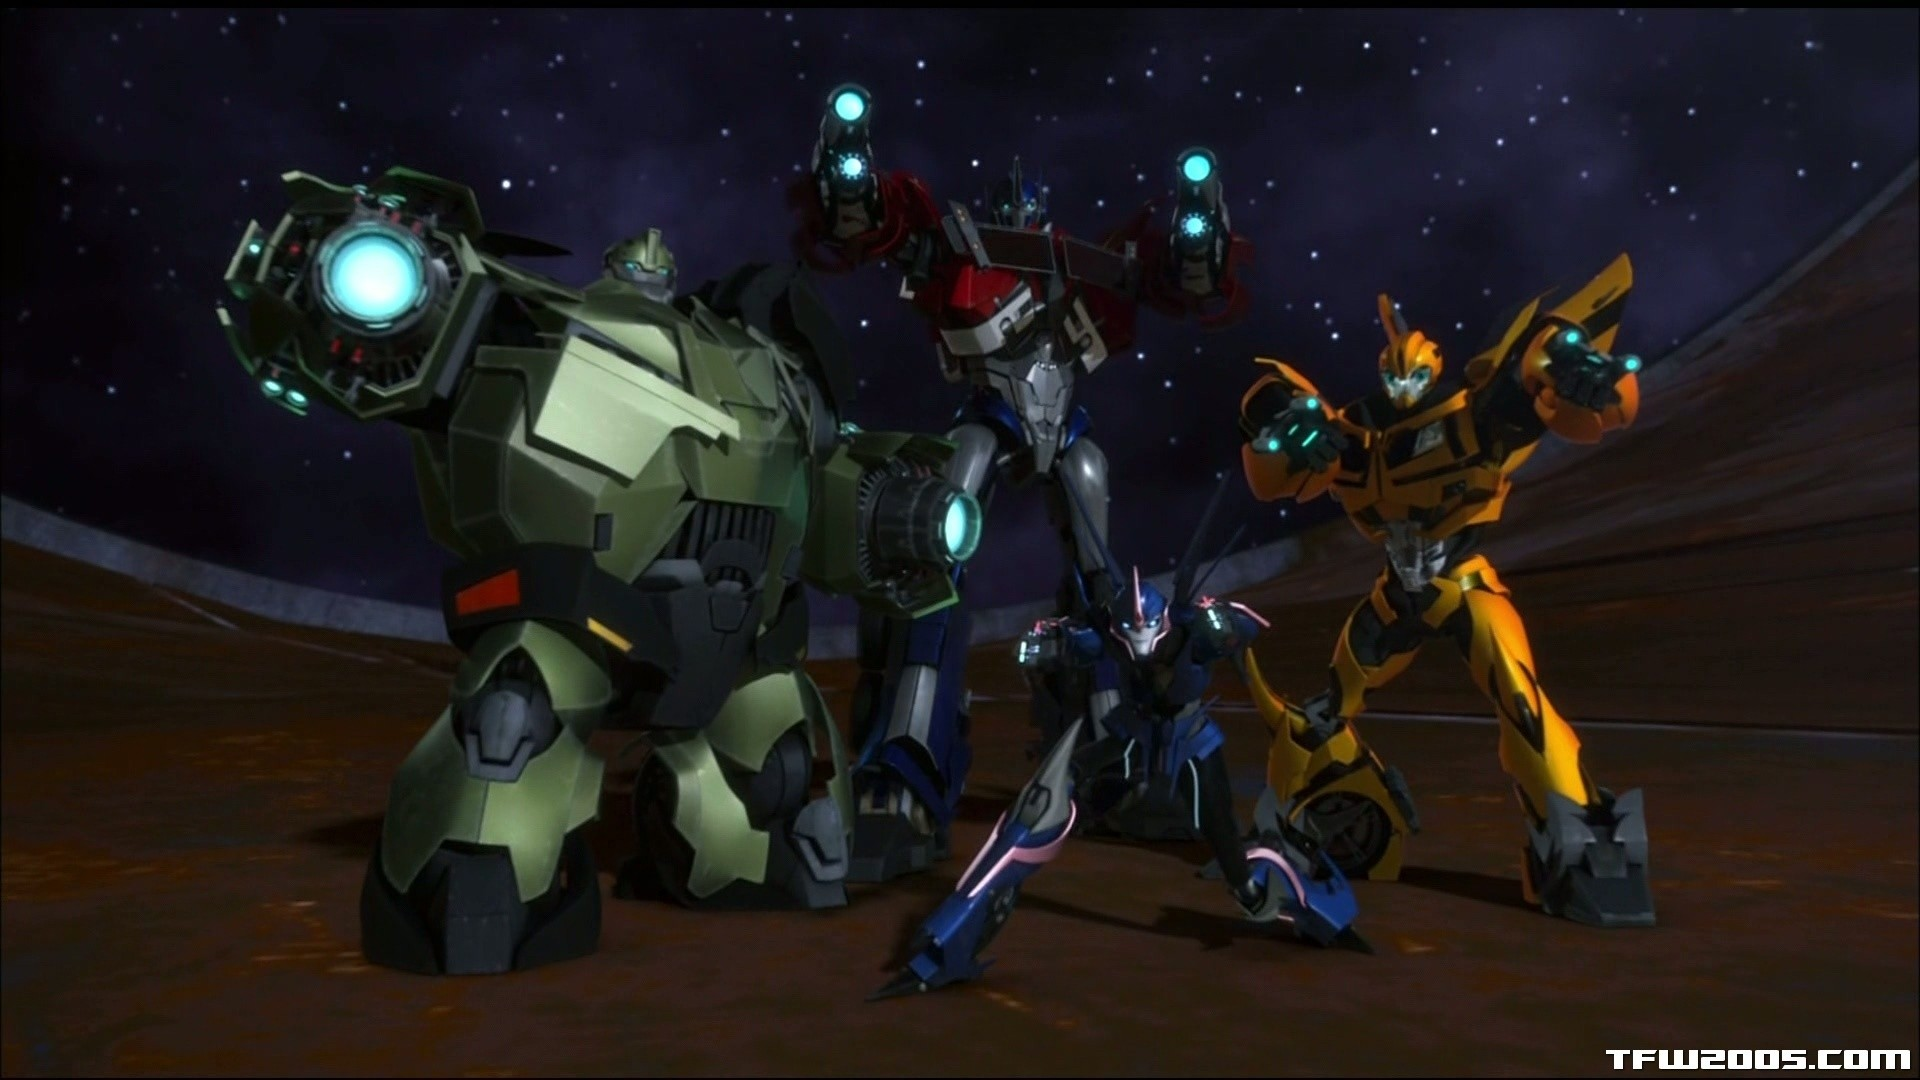 Wallpaper Transformers Prime 61 Images